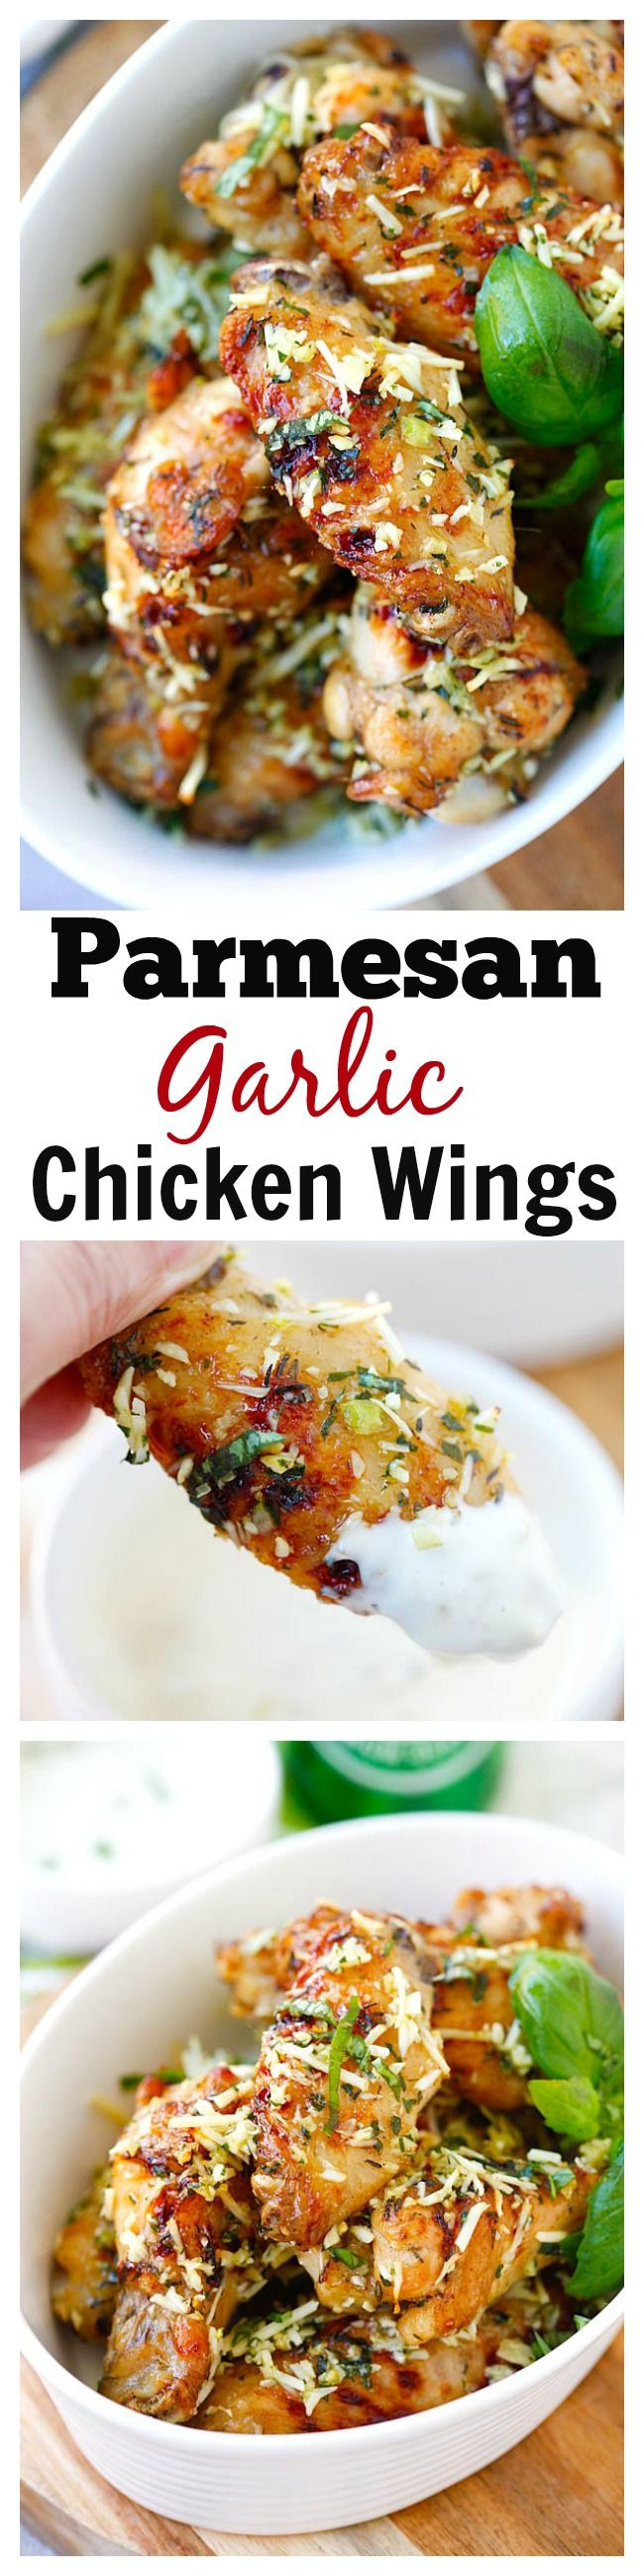 Best and easiest Baked Parmesan Garlic Chicken Wings made with Parmesan, garlic, basil, and spices, with blue cheese mustard dressing. | rasamalaysia.com